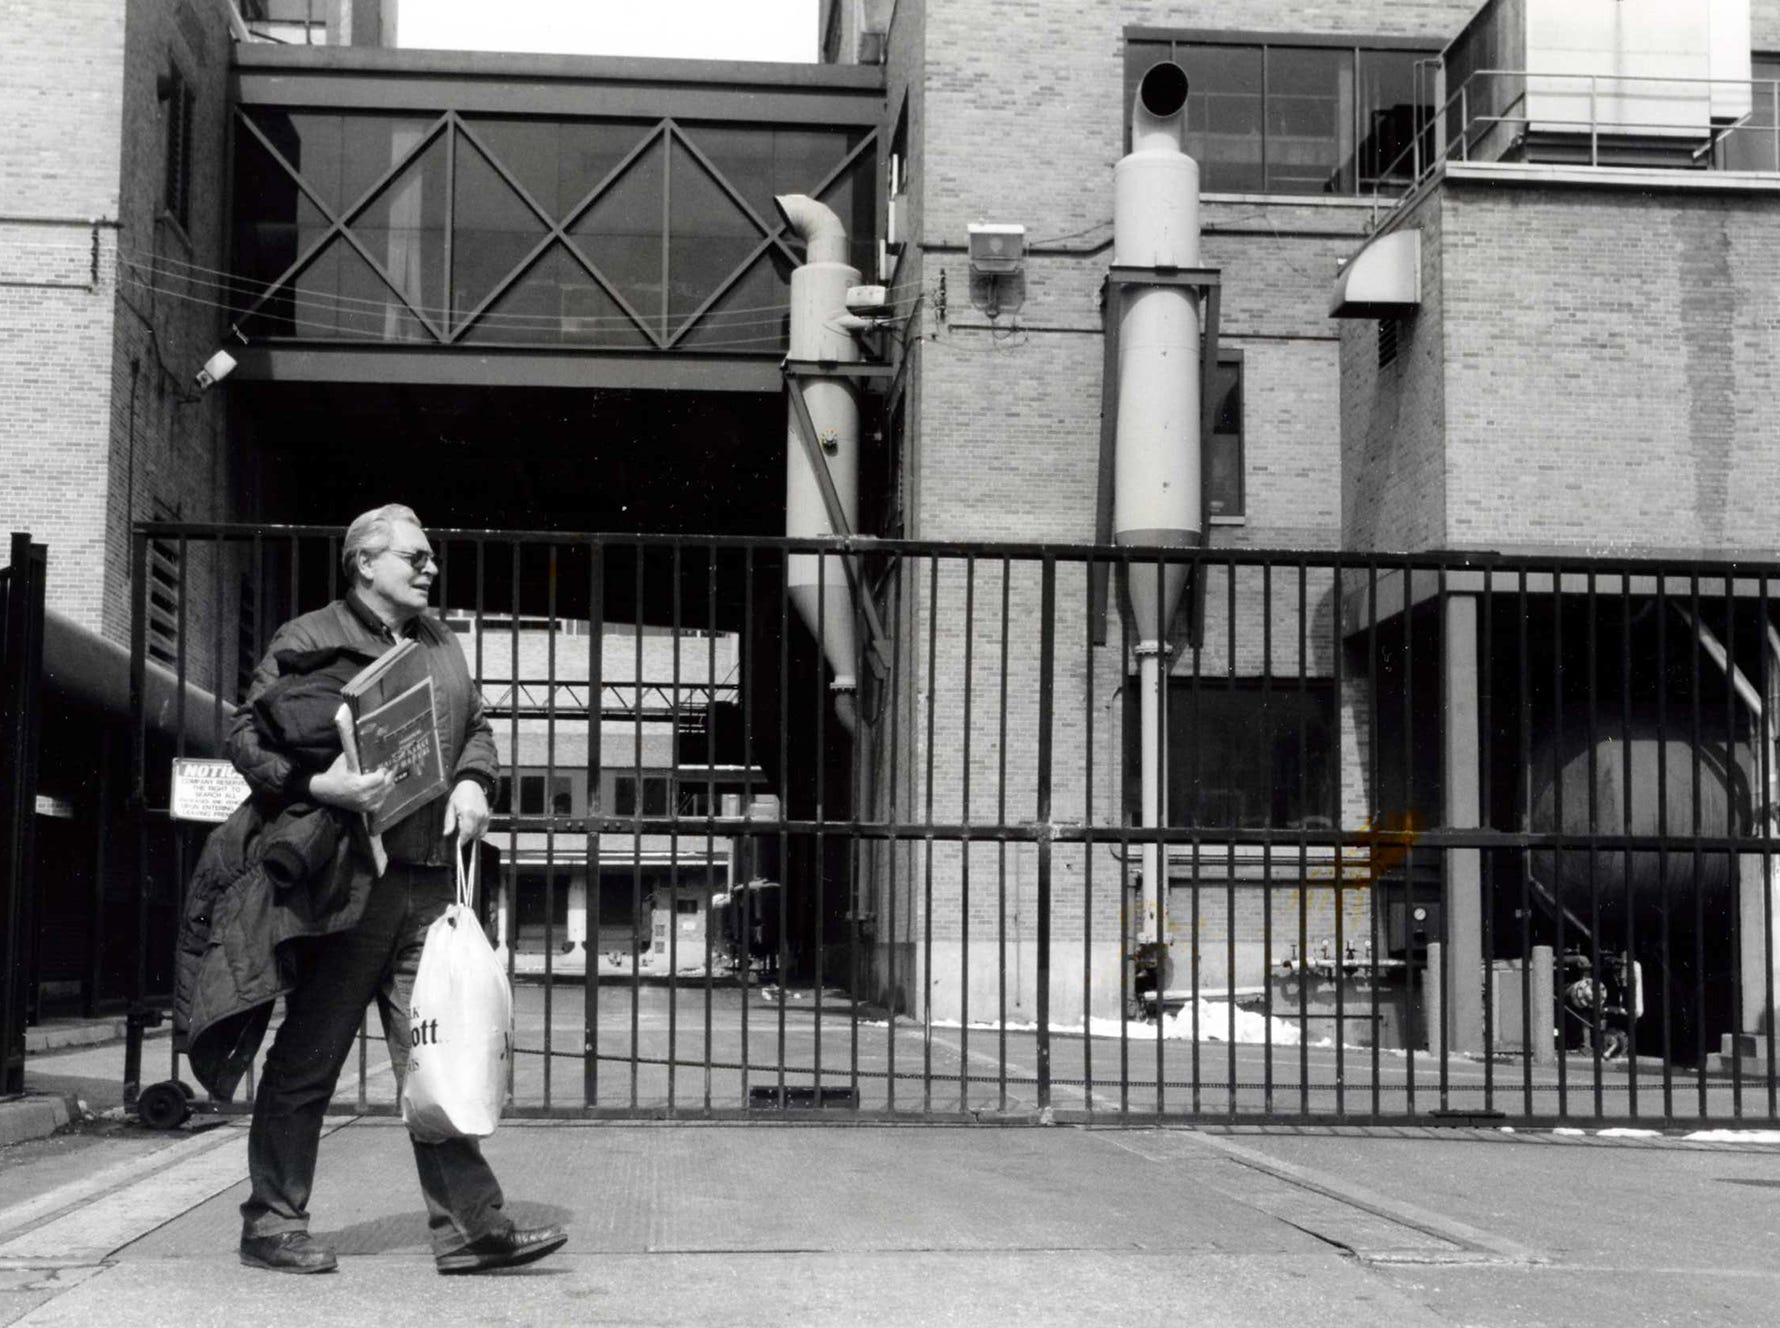 John Nataluk, of North Bergen, leaves the Maxwell House coffee plant as it shutters in 1992 after 29 years of employment.